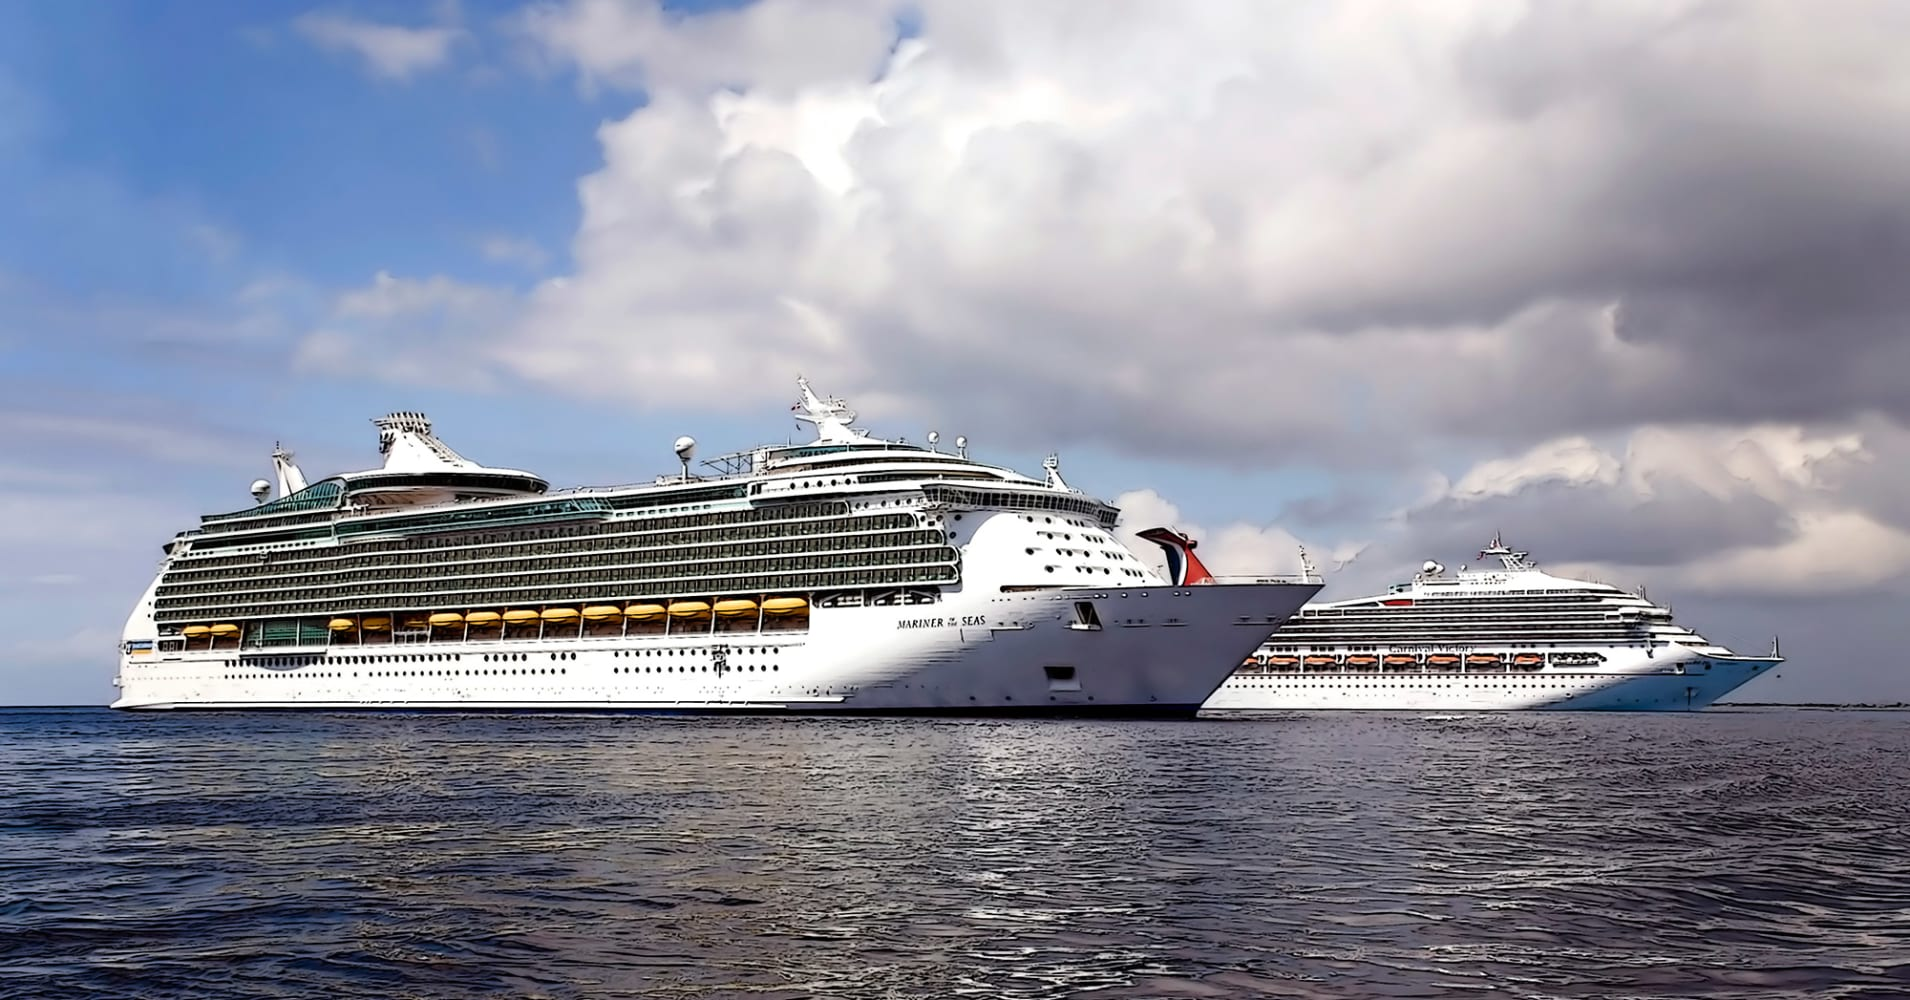 Cruise lines build up capacity despite global headwinds